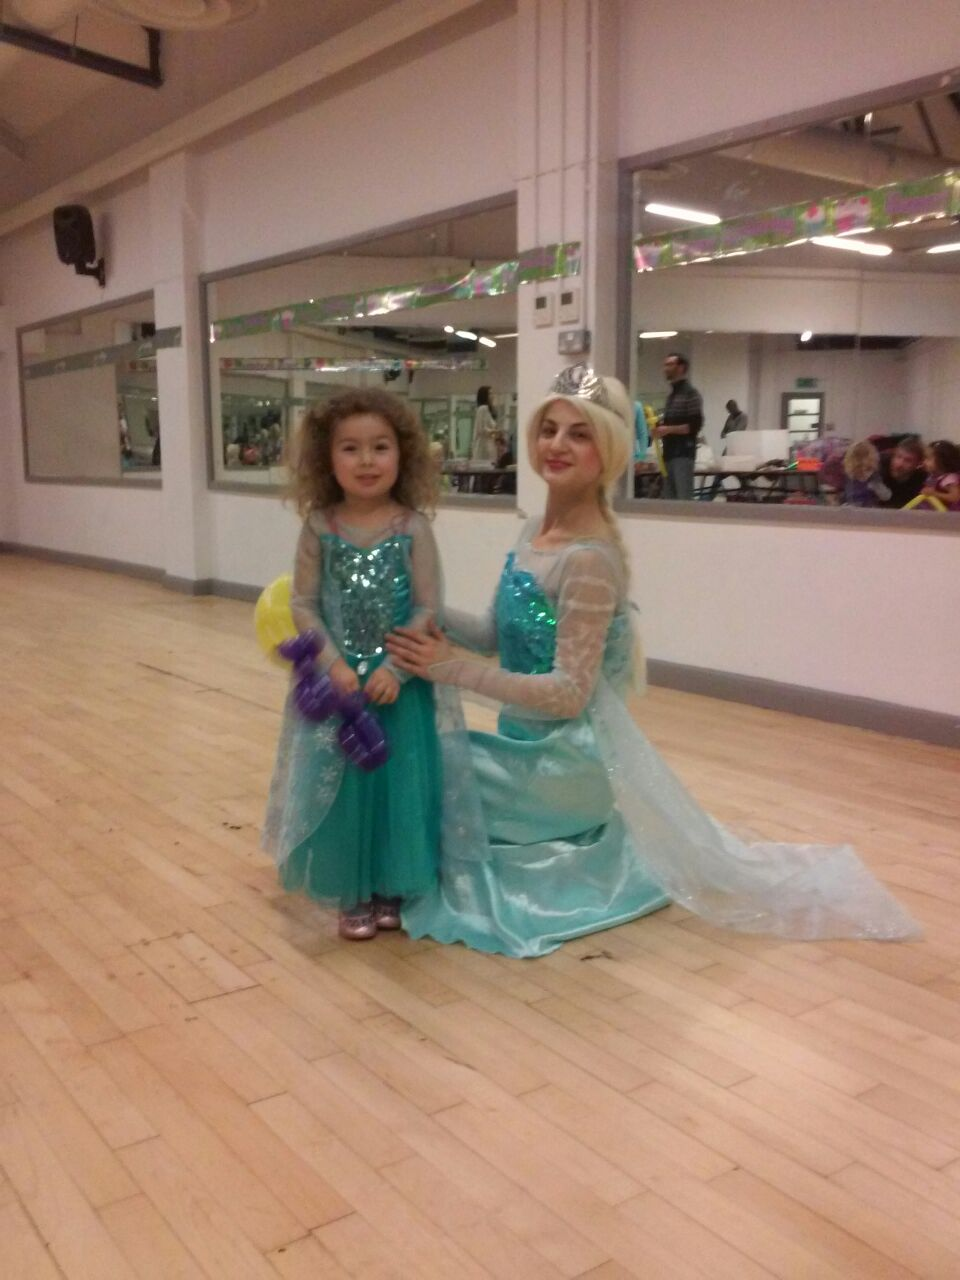 Childrens Birthday Party Entertainers Birmingham Frozen AEIOU - Childrens birthday party entertainers london